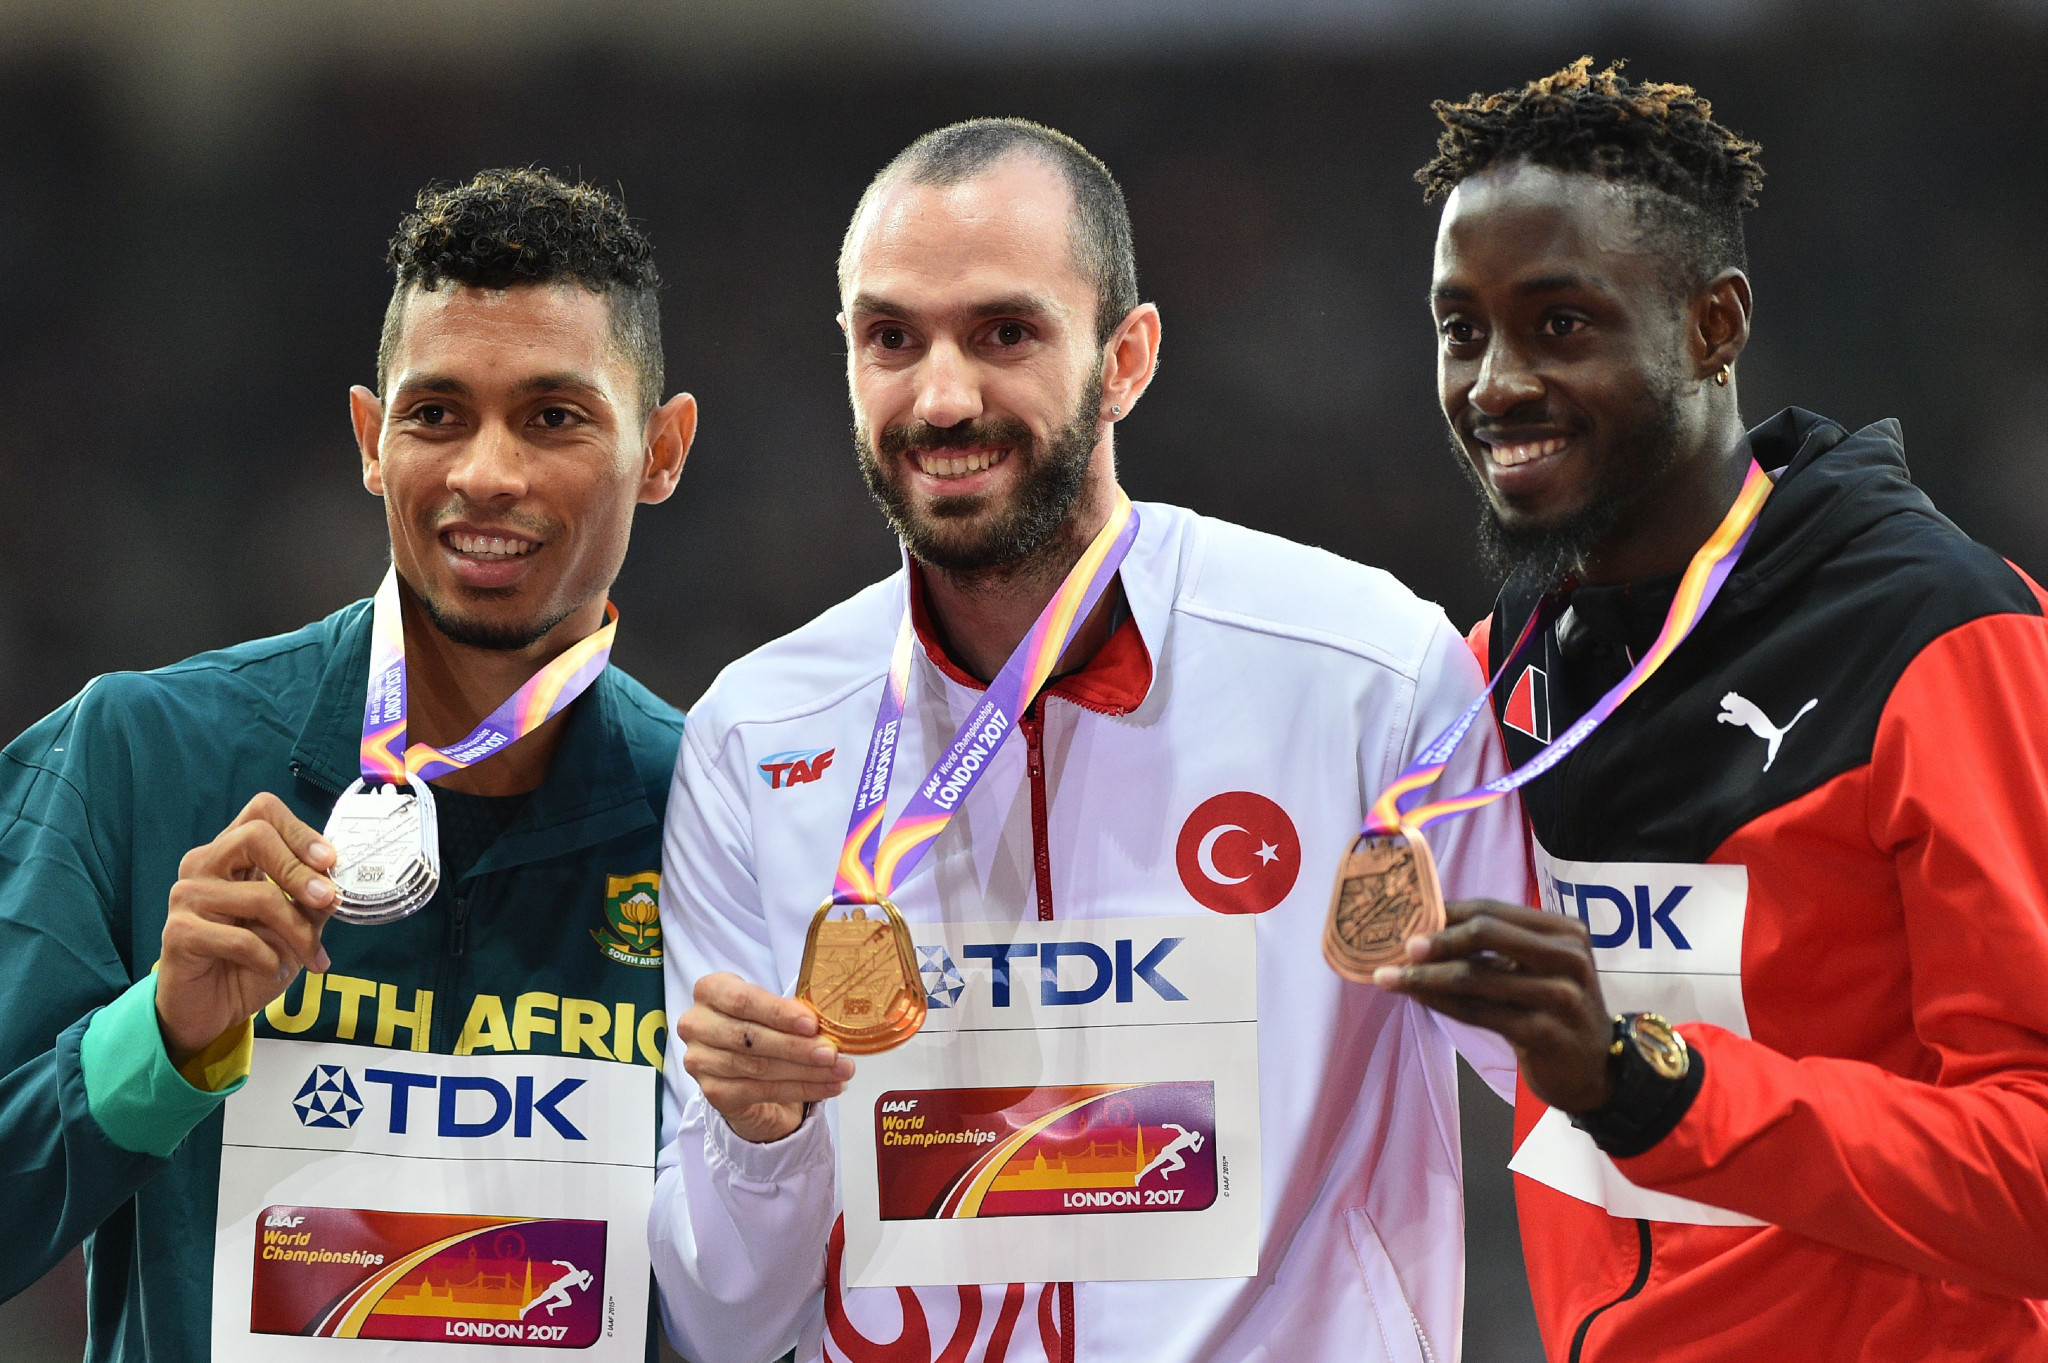 Turkey's Ramil Guliyev is using the Gloria Cup as a final preparation for his 200m world title defence in Doha ©Getty Images